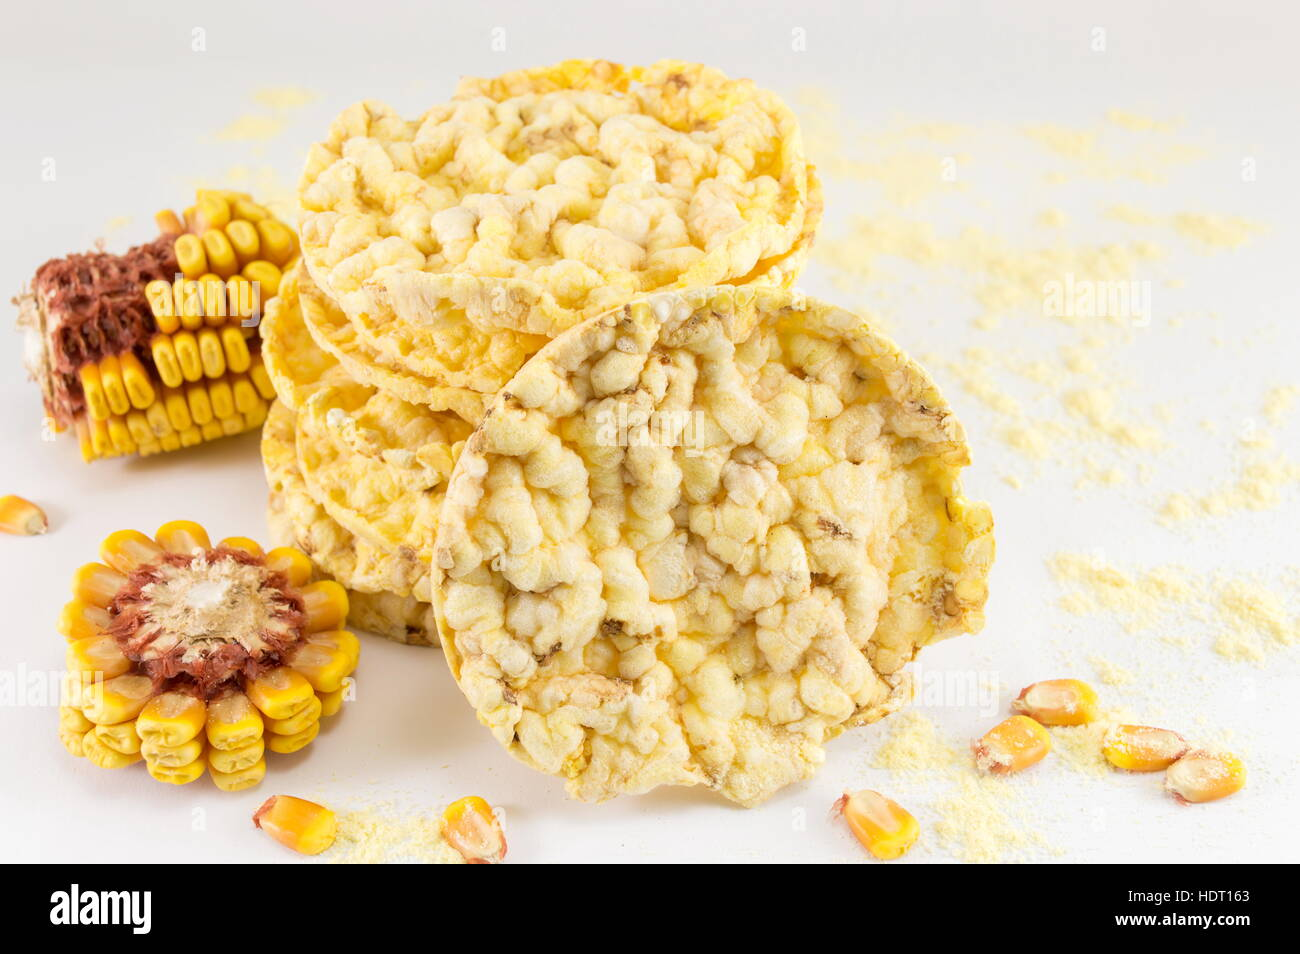 circle shaped corn snacks and corn kernels - Stock Image